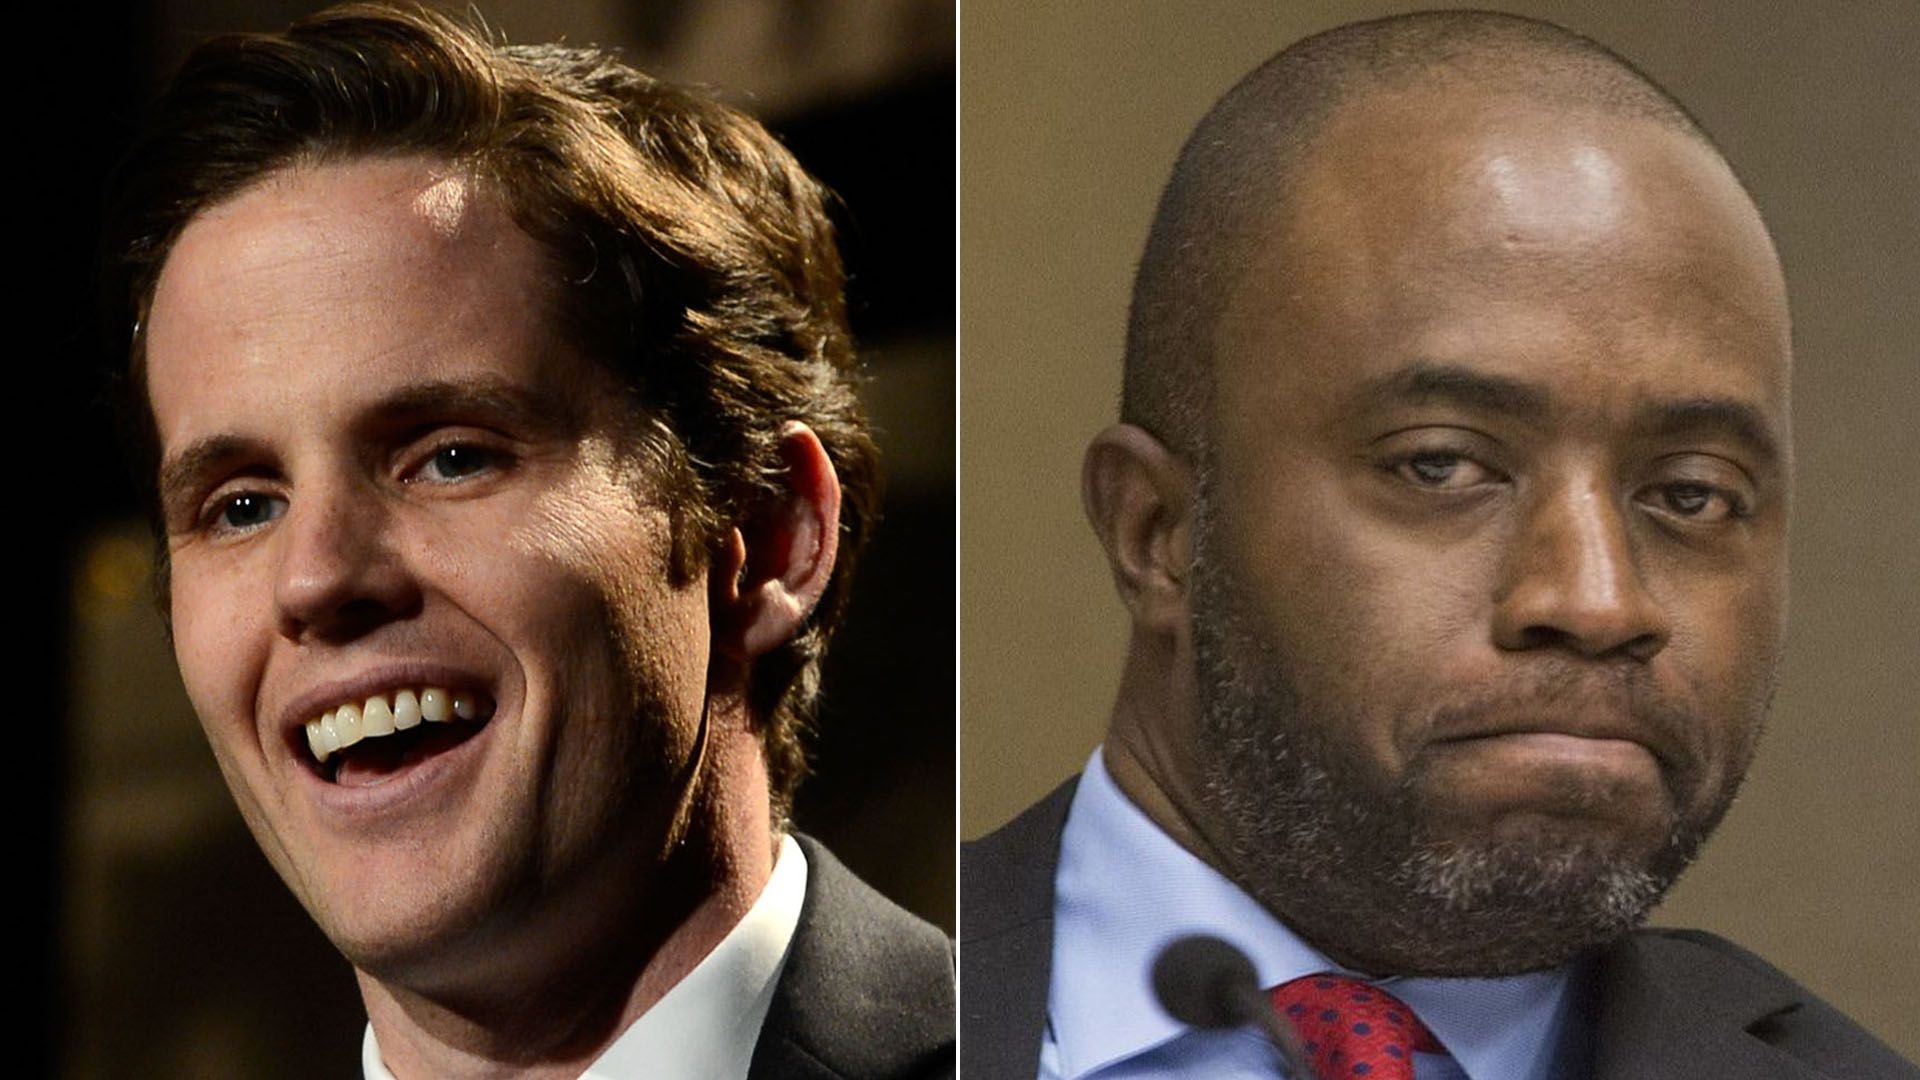 Marshall Tuck, left, attends the Alliance For Children's Rights' 21st annual dinner at the Beverly Hilton Hotel on March 7, 2013 in Beverly Hills. Tony Thurmond, right, is seen during a California State Assembly Committee on Budget meeting in Sacramento on Jan. 20, 2016. (Credit: Frazer Harrison/Getty Images; Los Angeles Times)